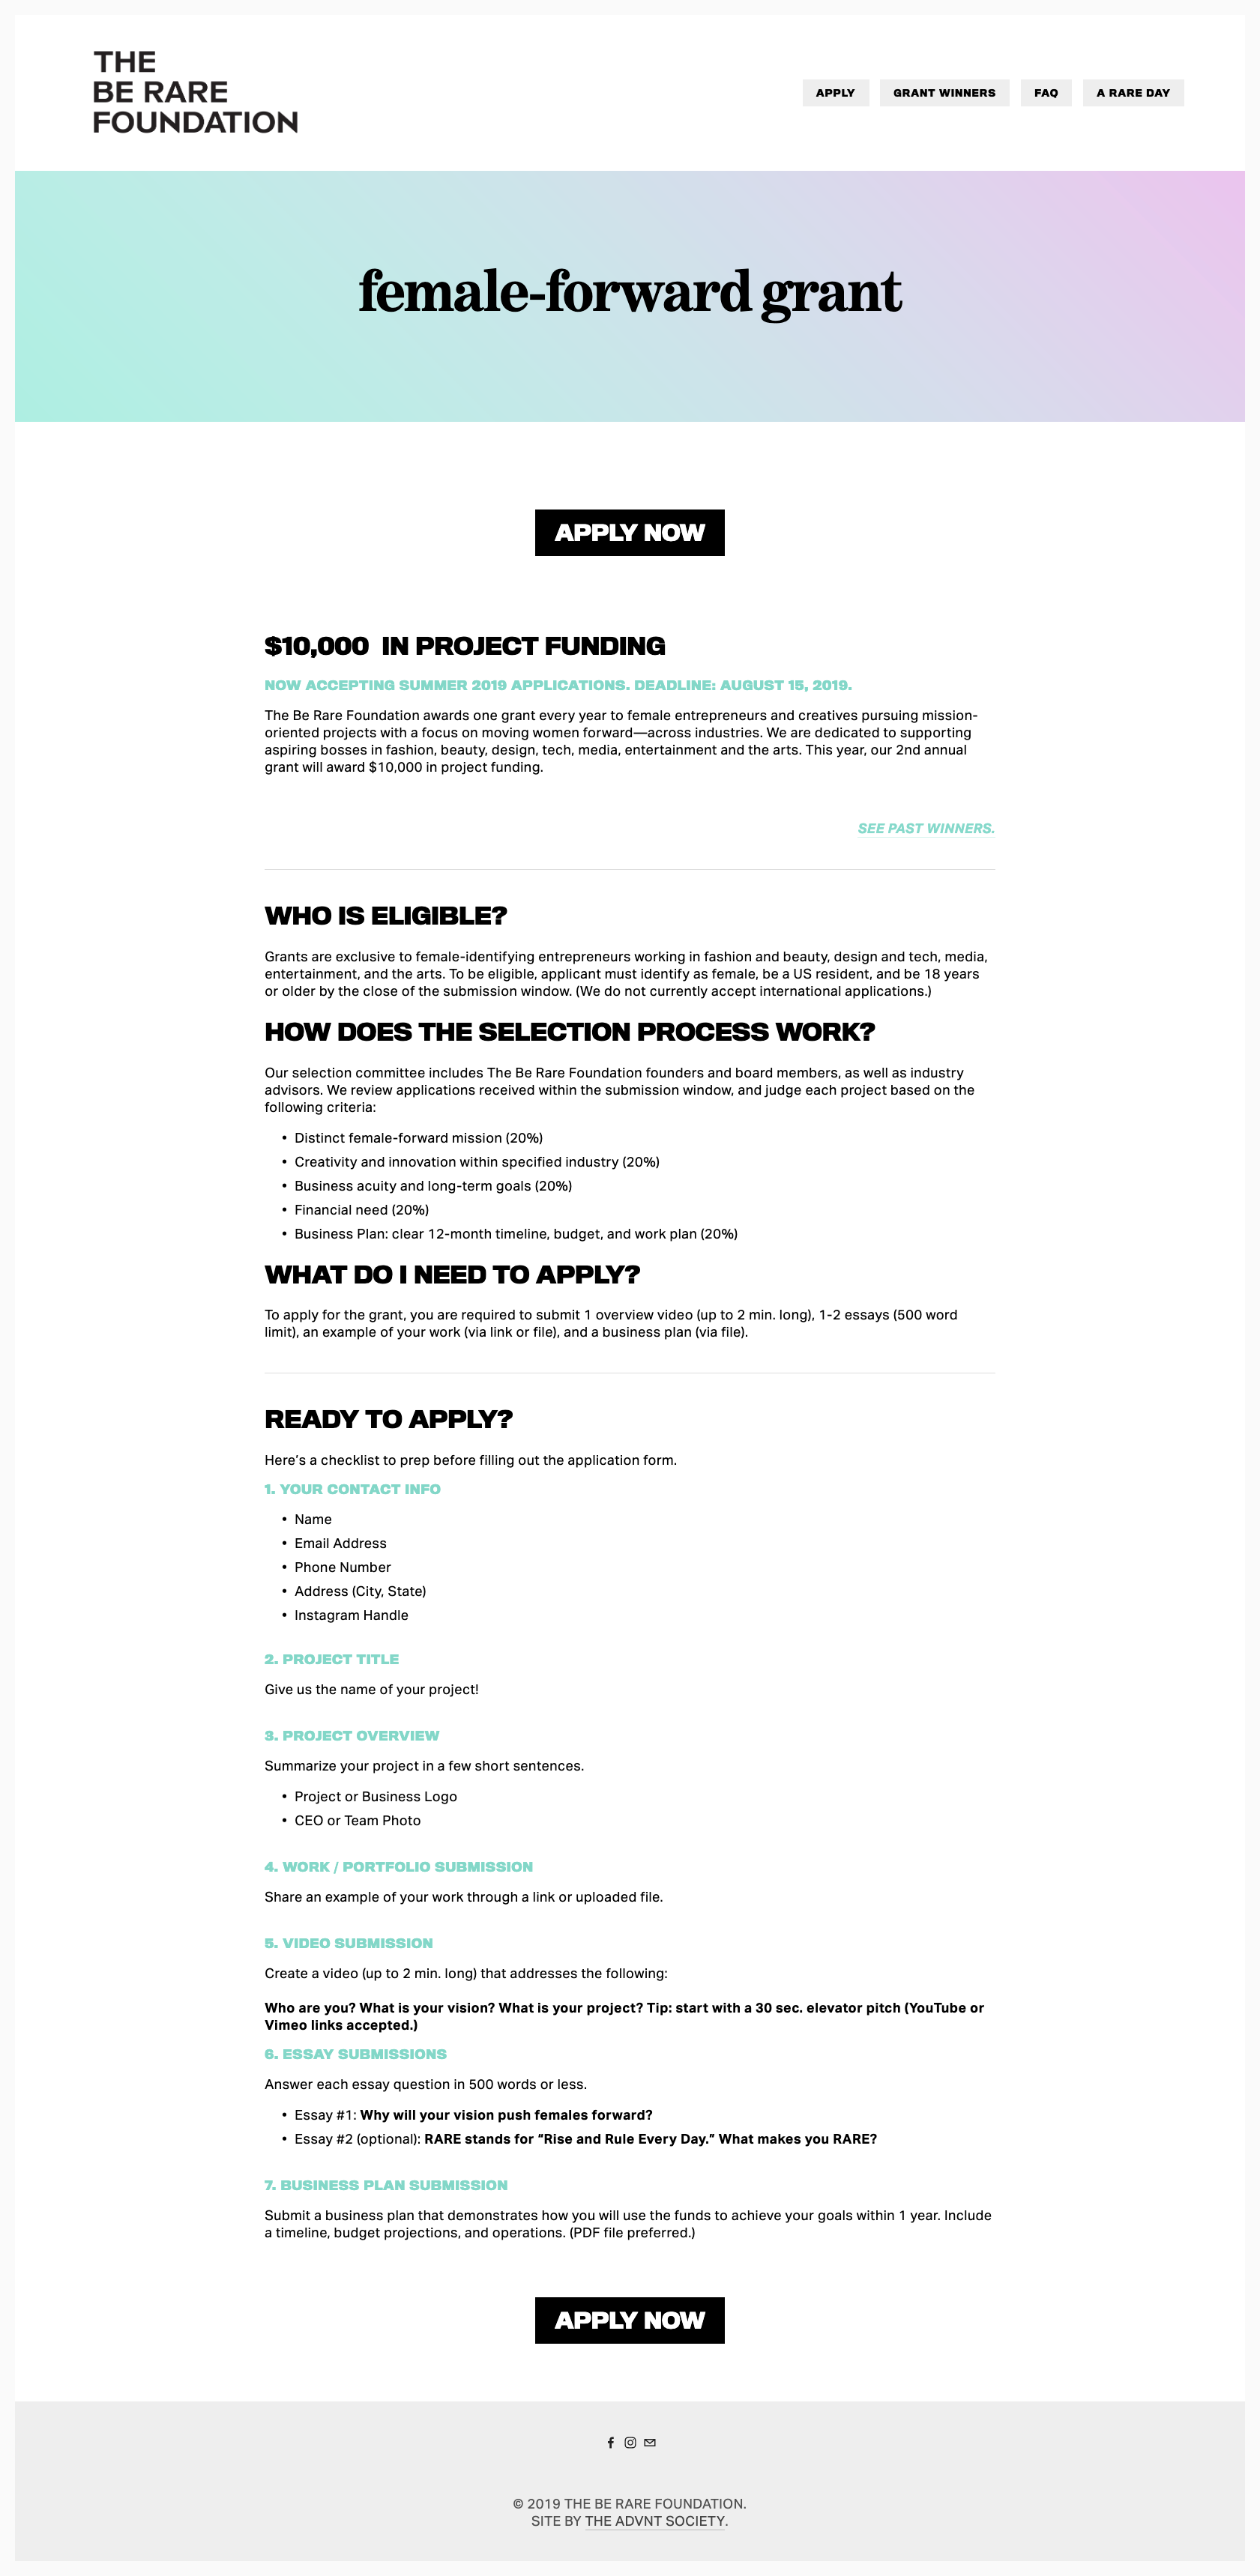 screencapture-theberarefoundation-applications-2019-06-27-02_21_23.png